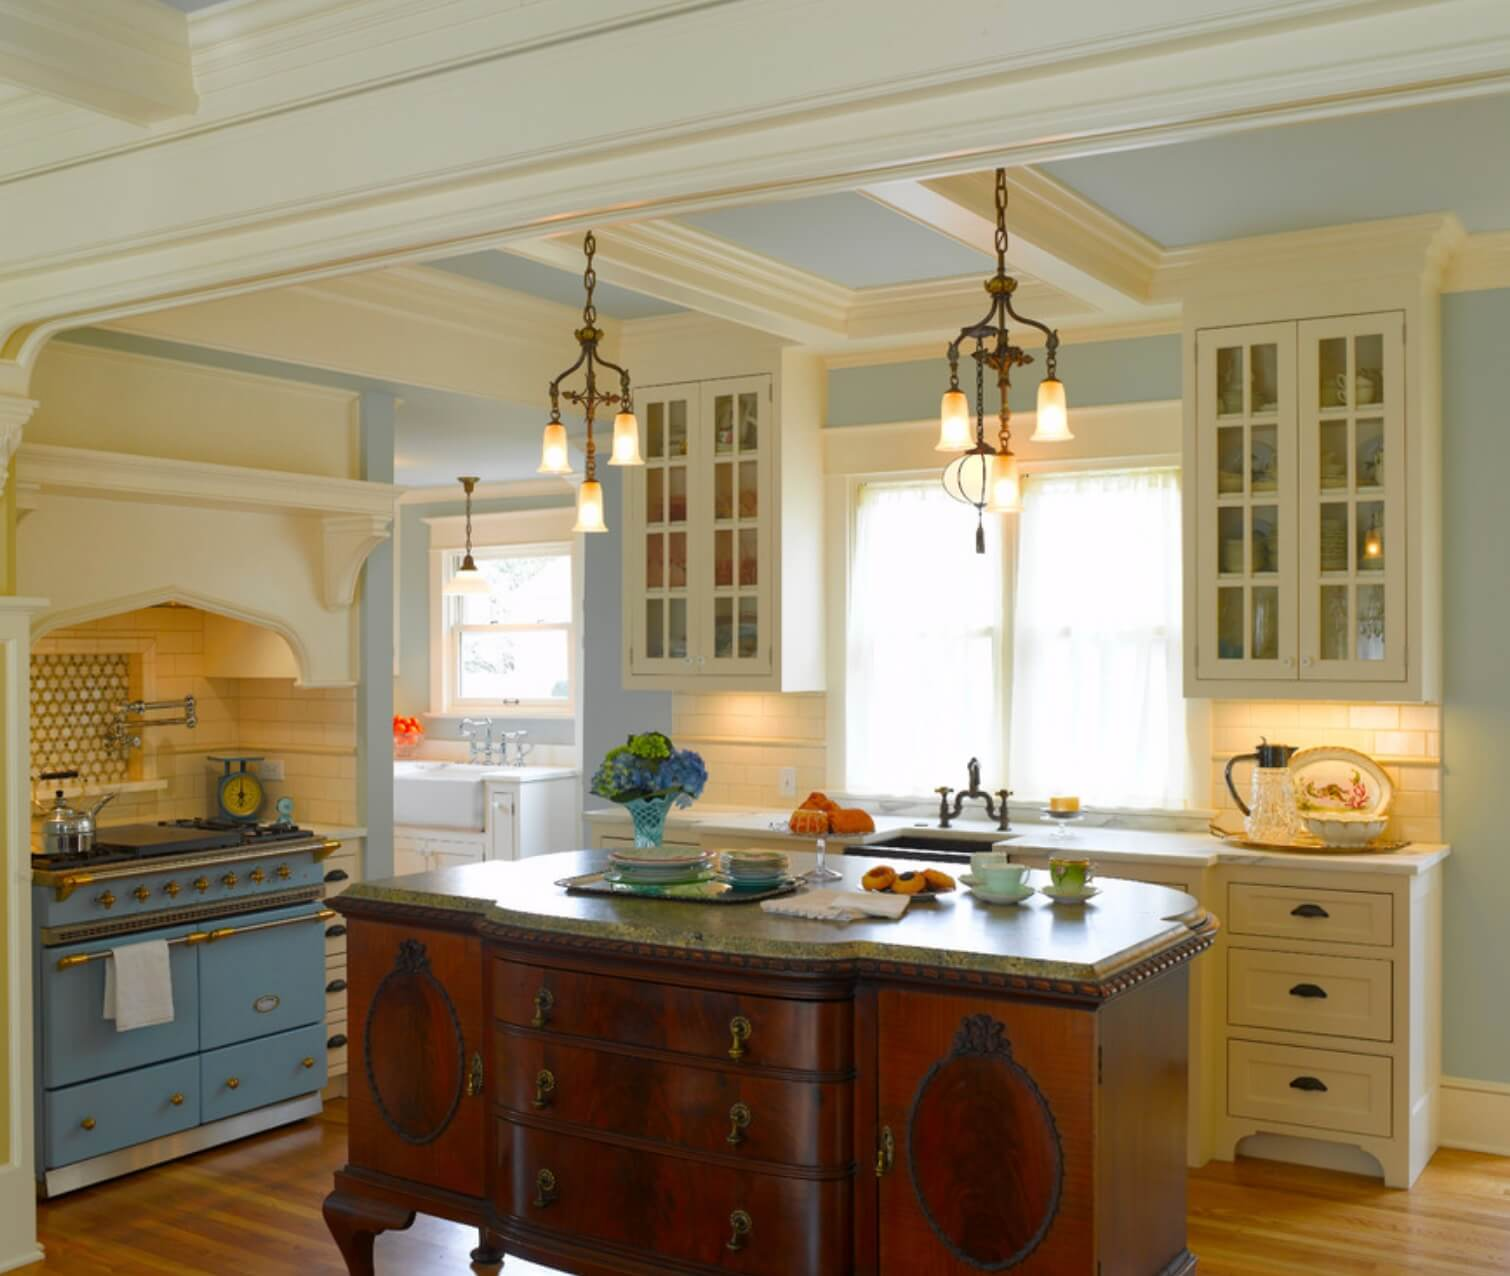 Pastel Wall Color Softens A Farmhouse Kitchen Image Rom Architecture